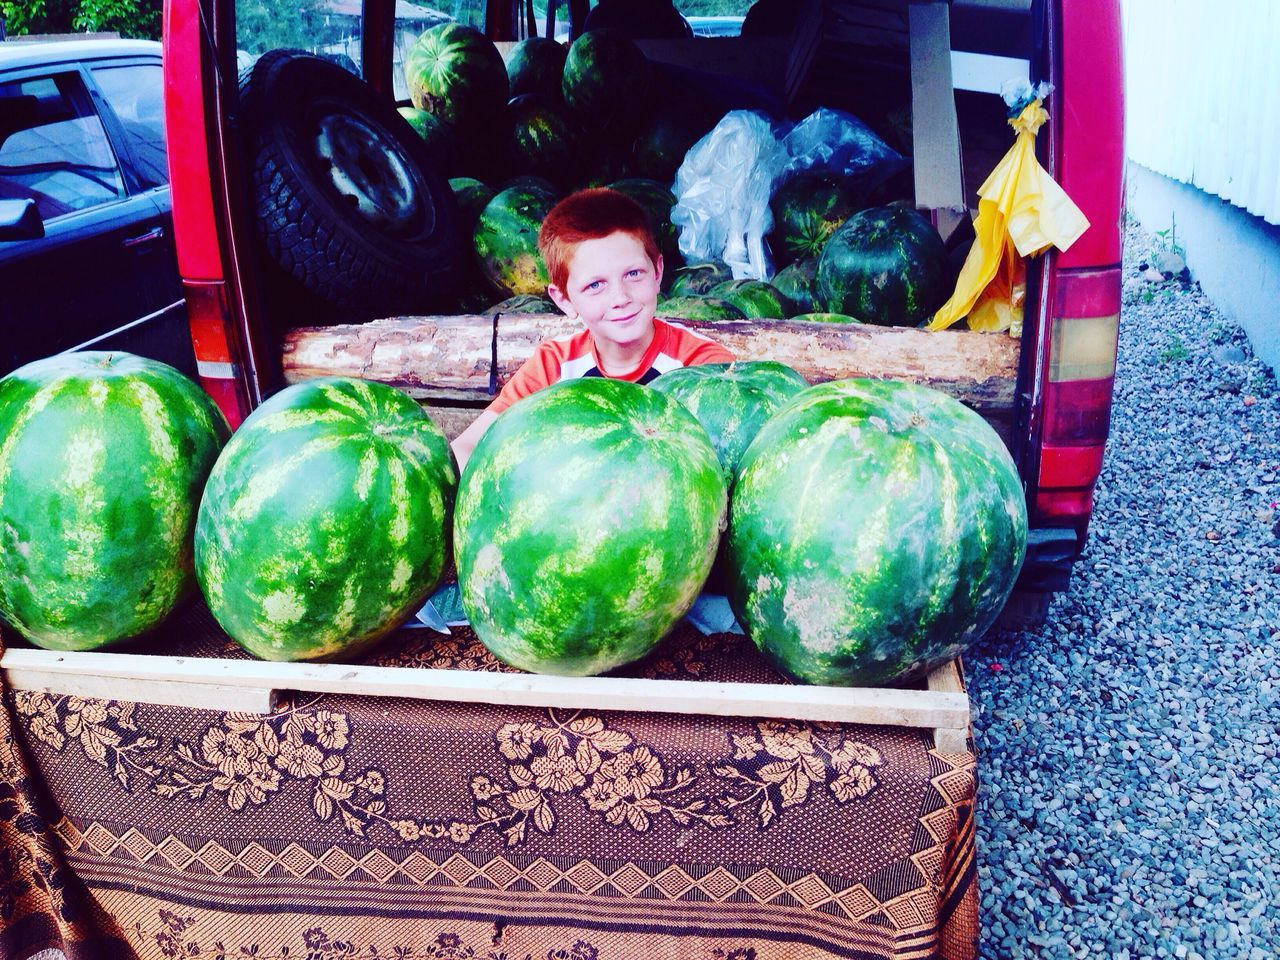 Watermelon Seller Redhead Redhear Young Boy Smile Aspindza Georgia Green Eyes Ilias <3 Showcase July IMography